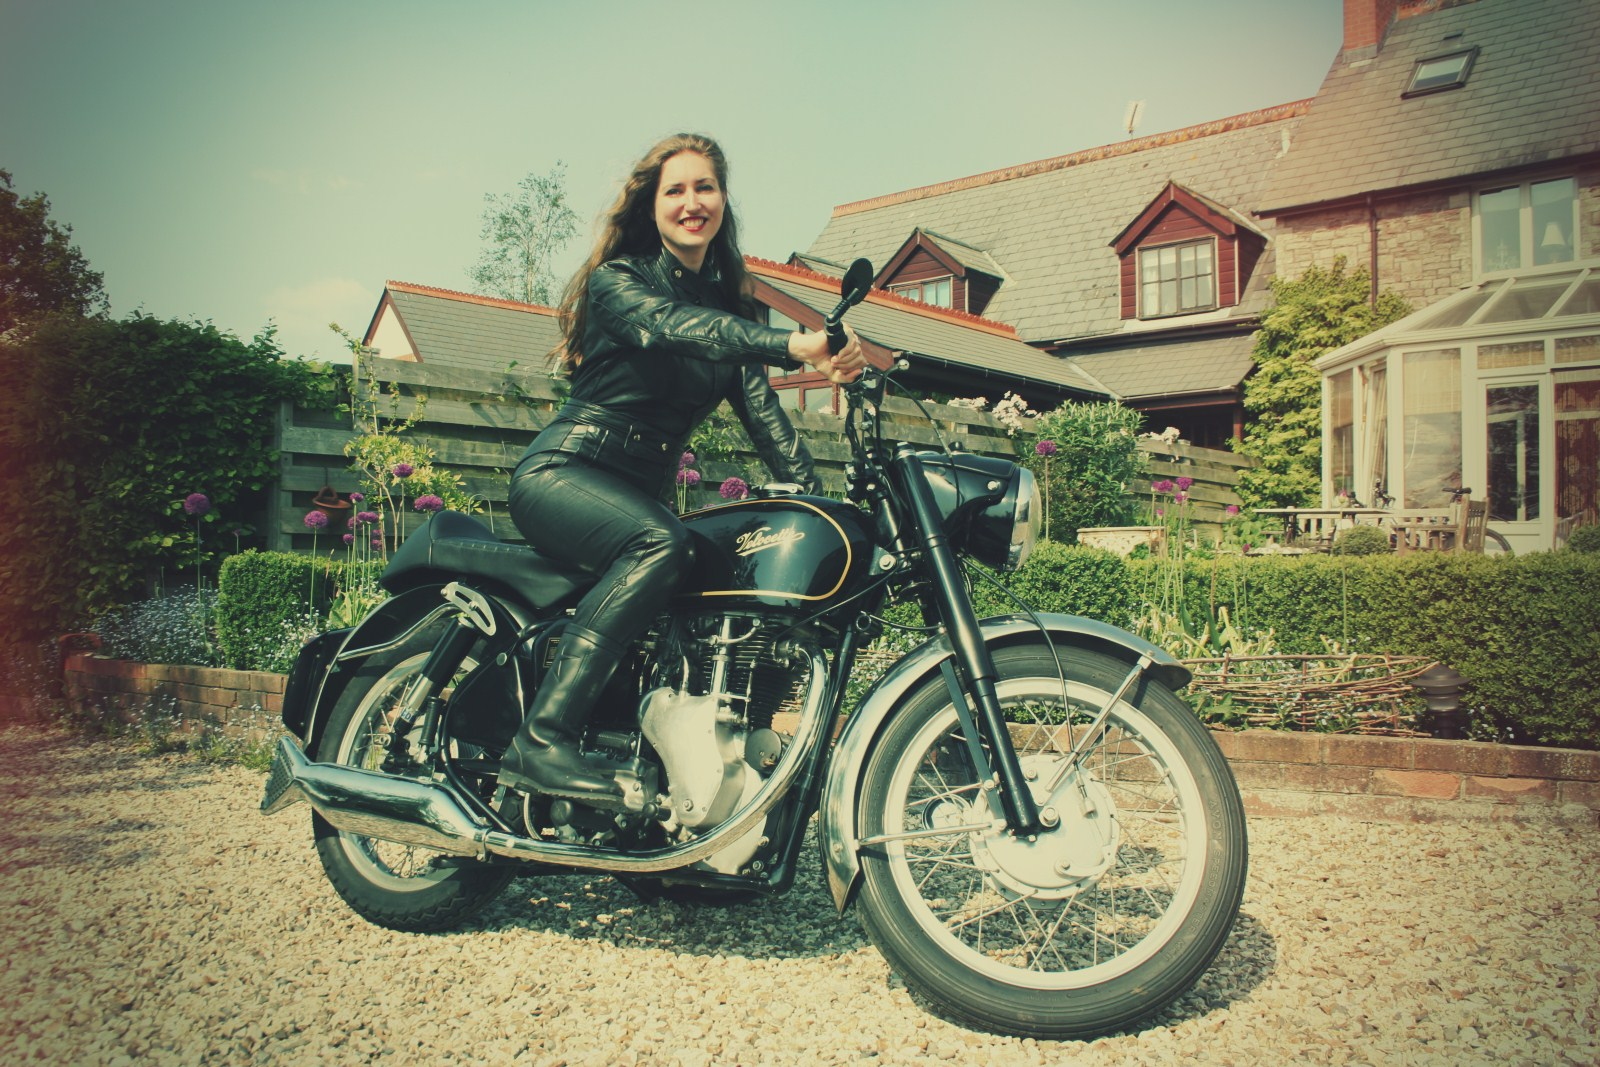 Girls on Motorcycles - pics and comments - Page 157 ...